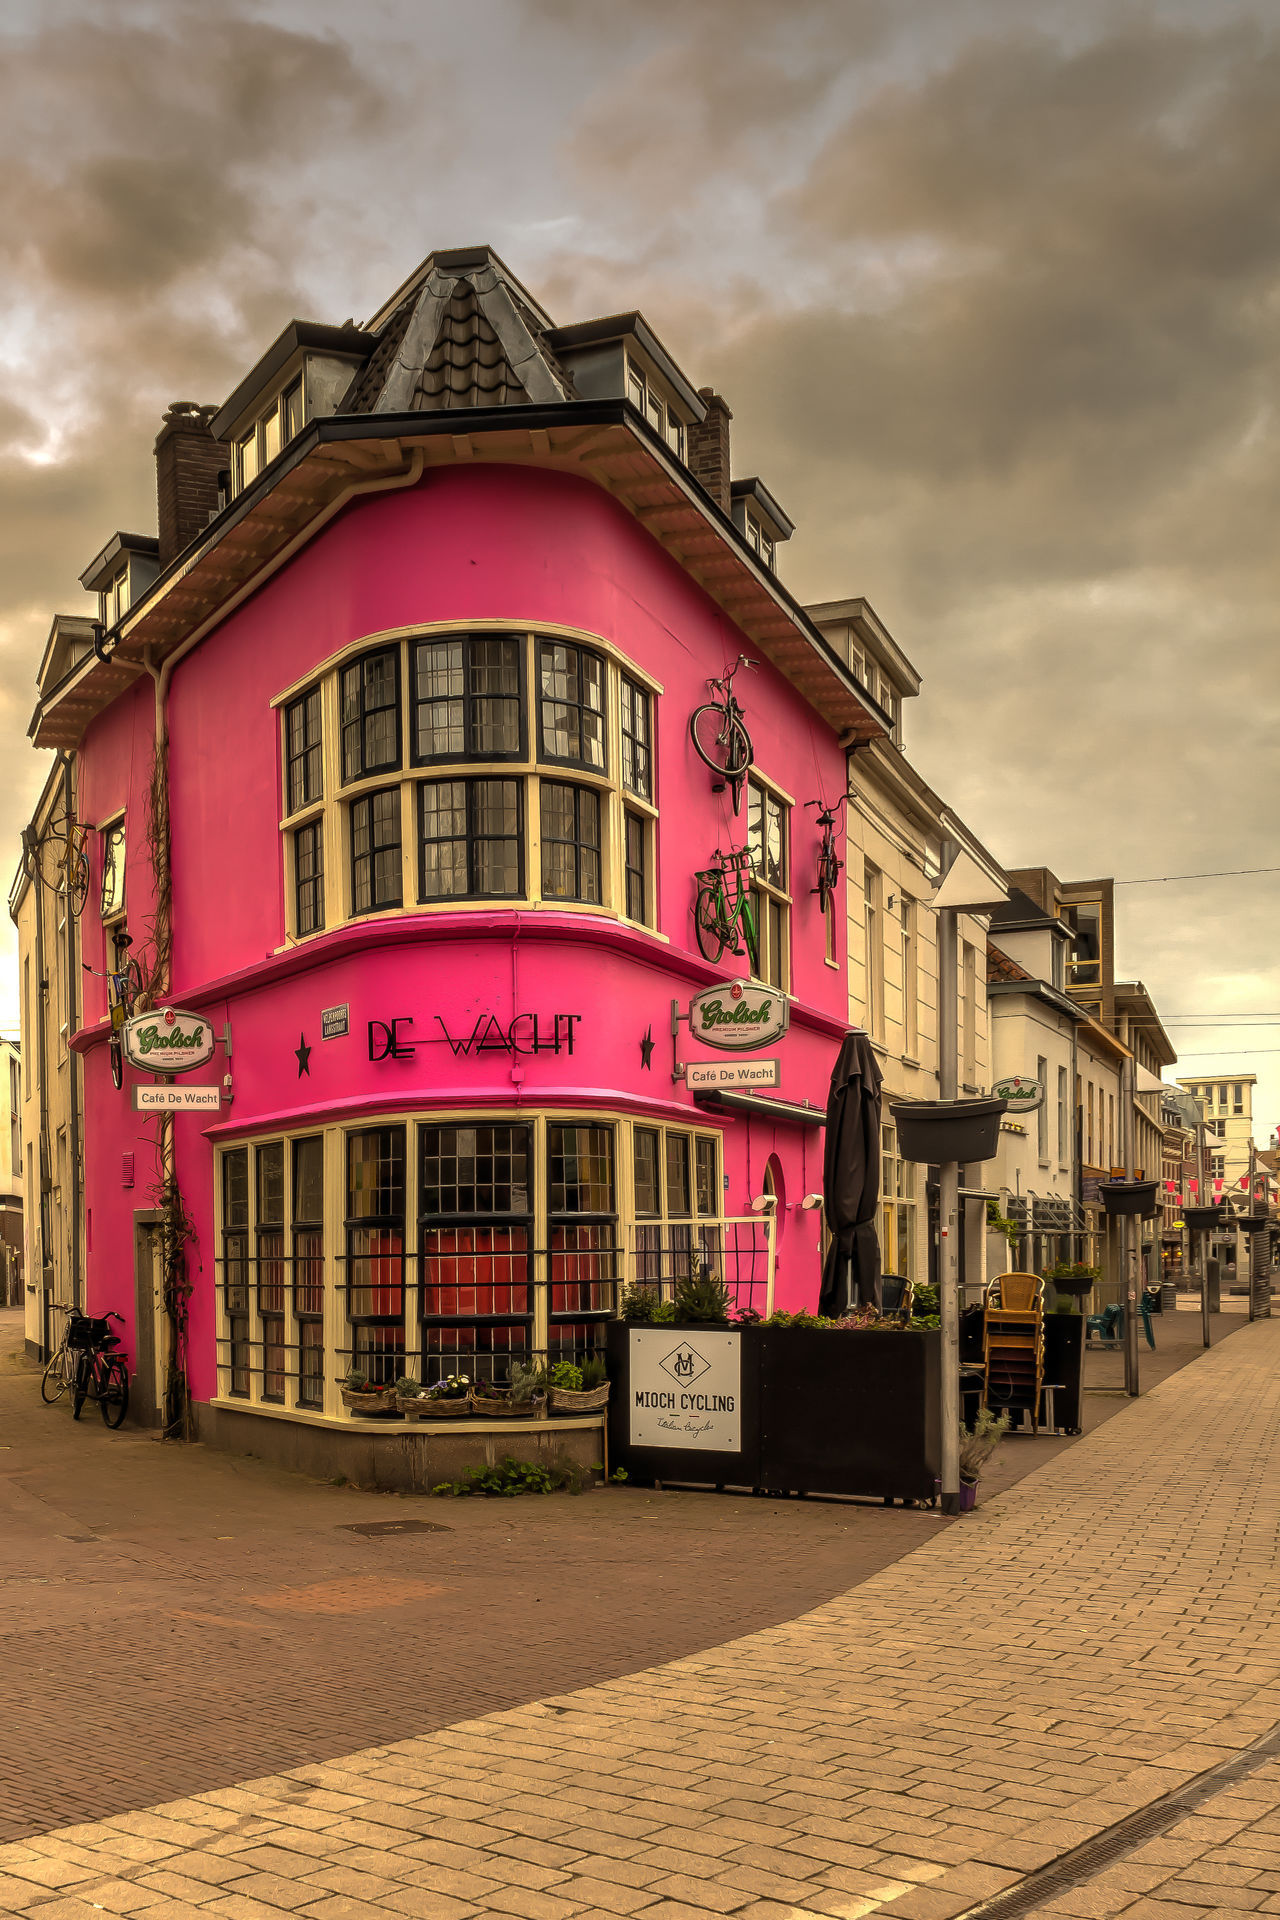 Café De Wacht painted pink to support the Giro d'Italia 2016, starting in Arnhem Architecture Built Structure Cafe City City Life Cloud Cloud - Sky Cloudy Day Exterior Façade Giro D'Italia Giro D'Italia 2016 Multi Colored No People Outdoors Pink Color Sky